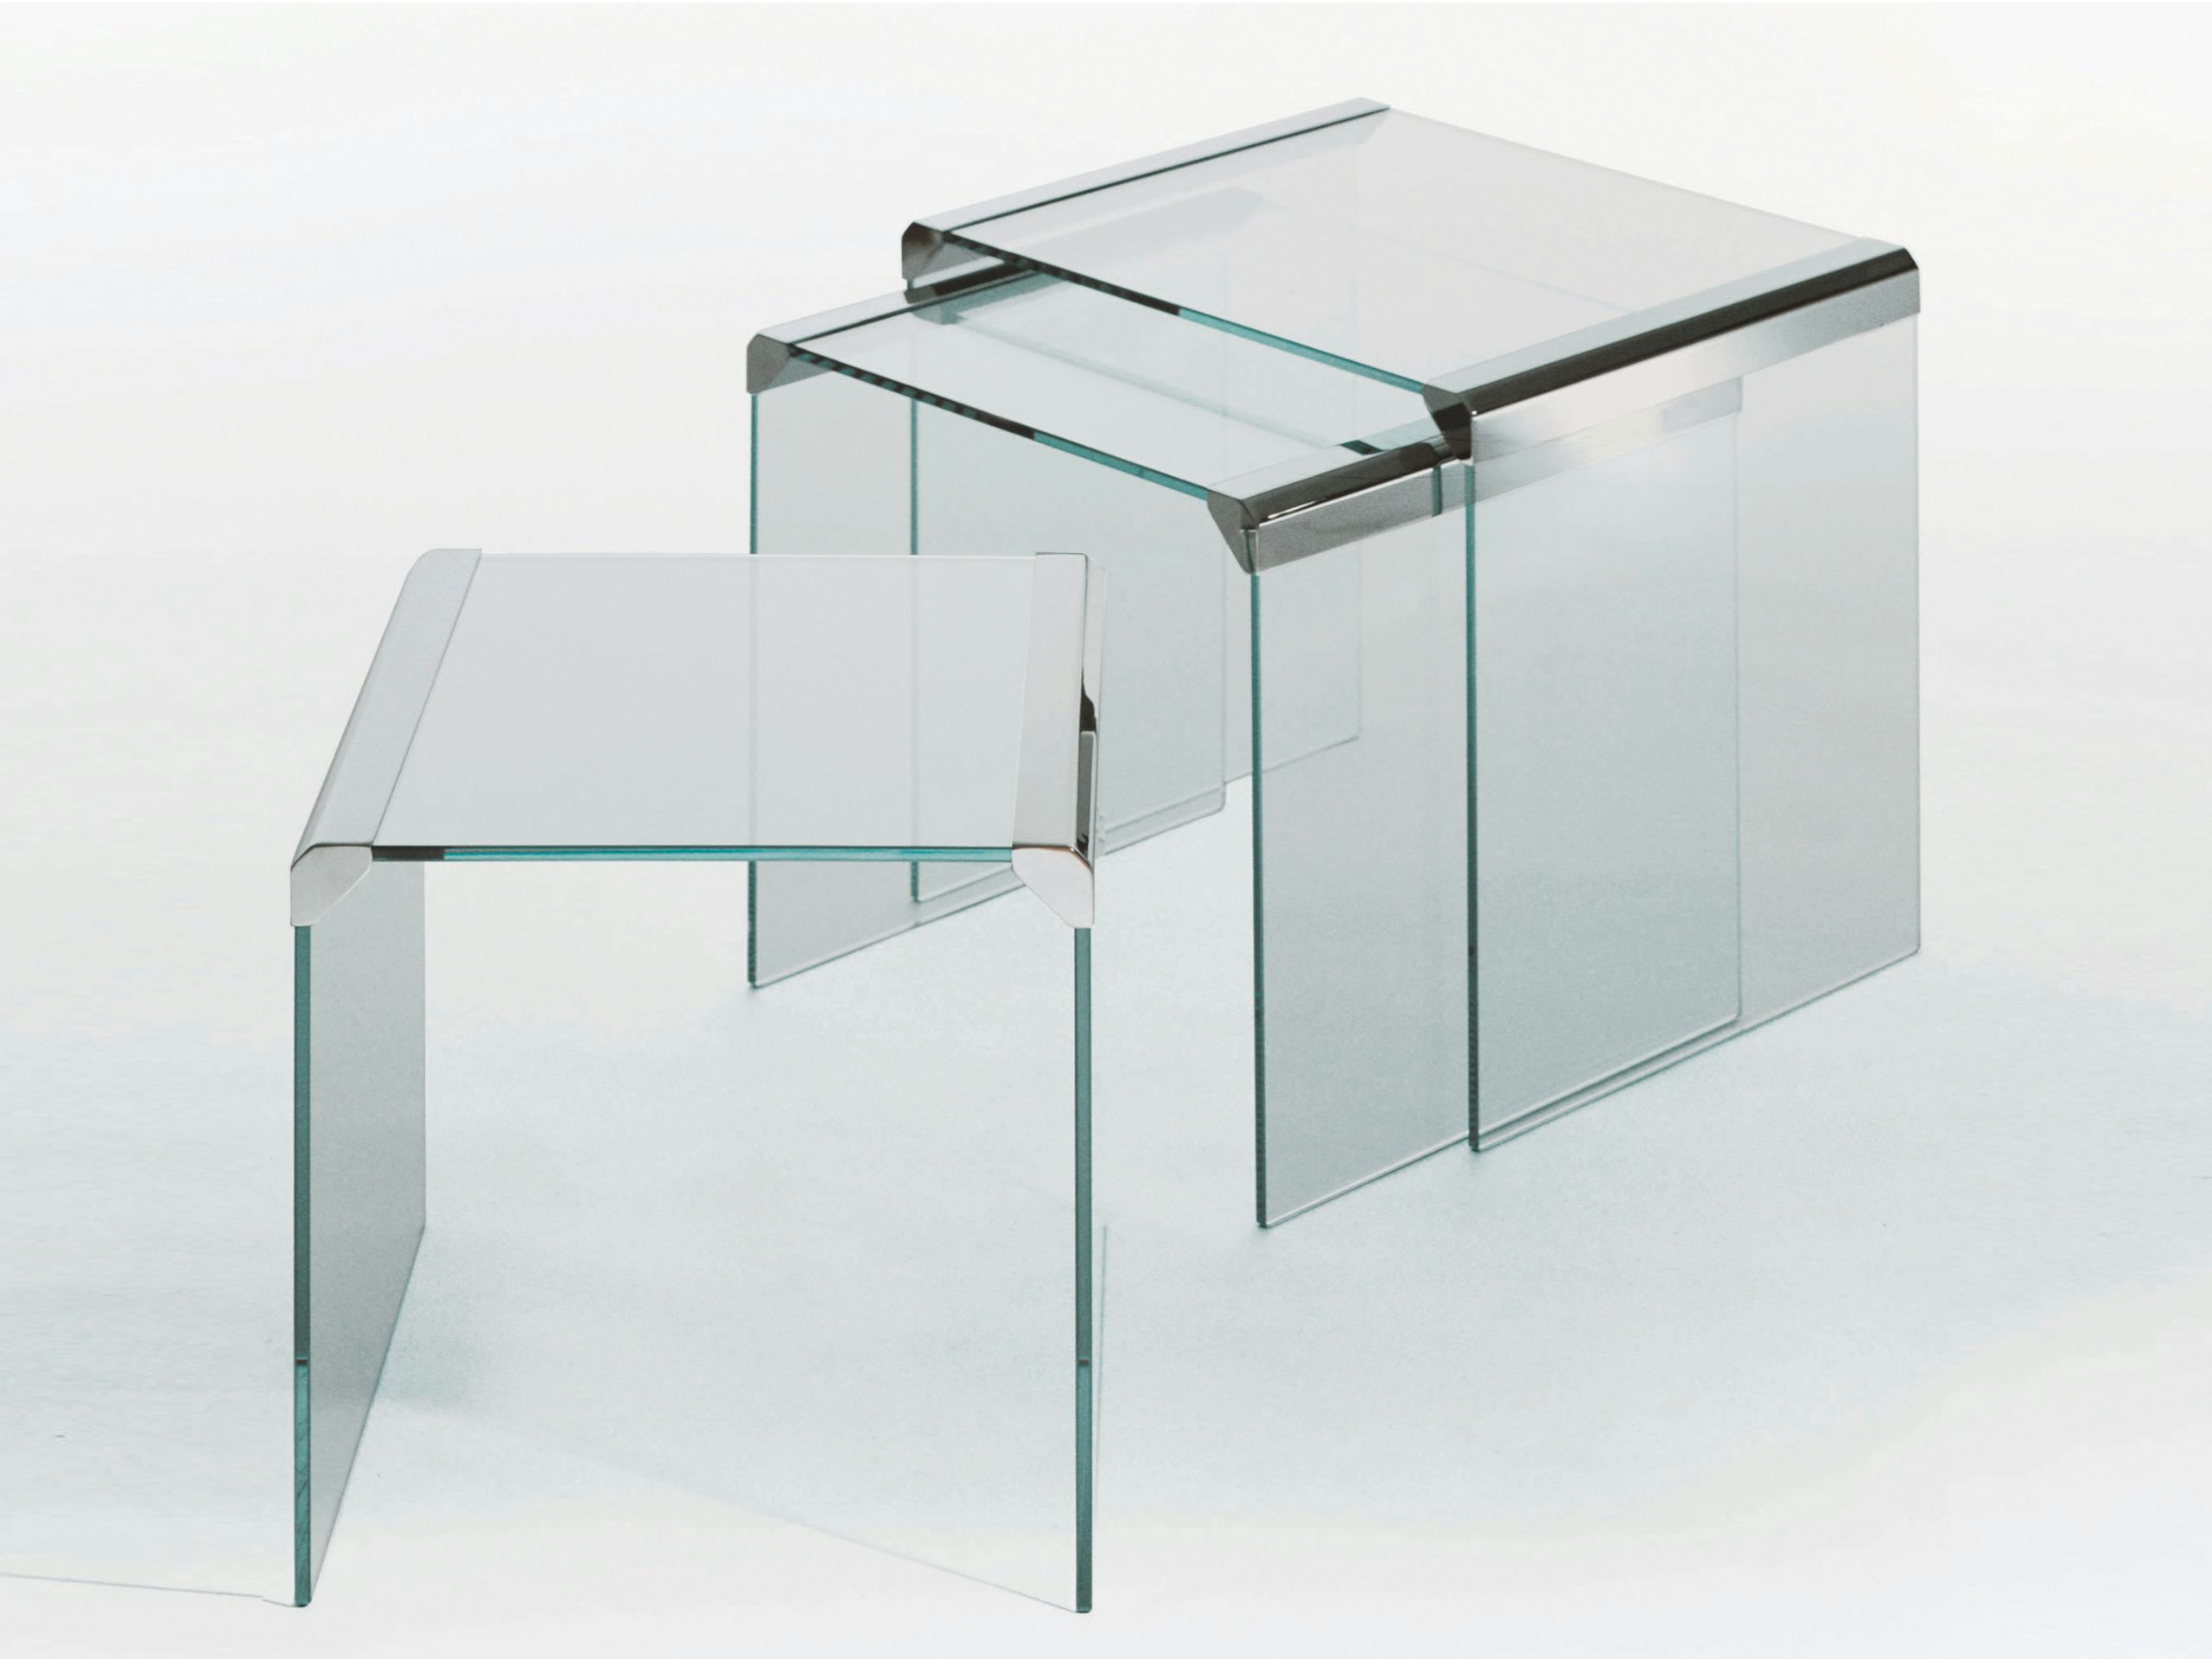 Stackable Crystal Coffee Table T 35 Trio By Gallotti Coffee Table Square Glass Coffee Table Table [ 1920 x 2560 Pixel ]